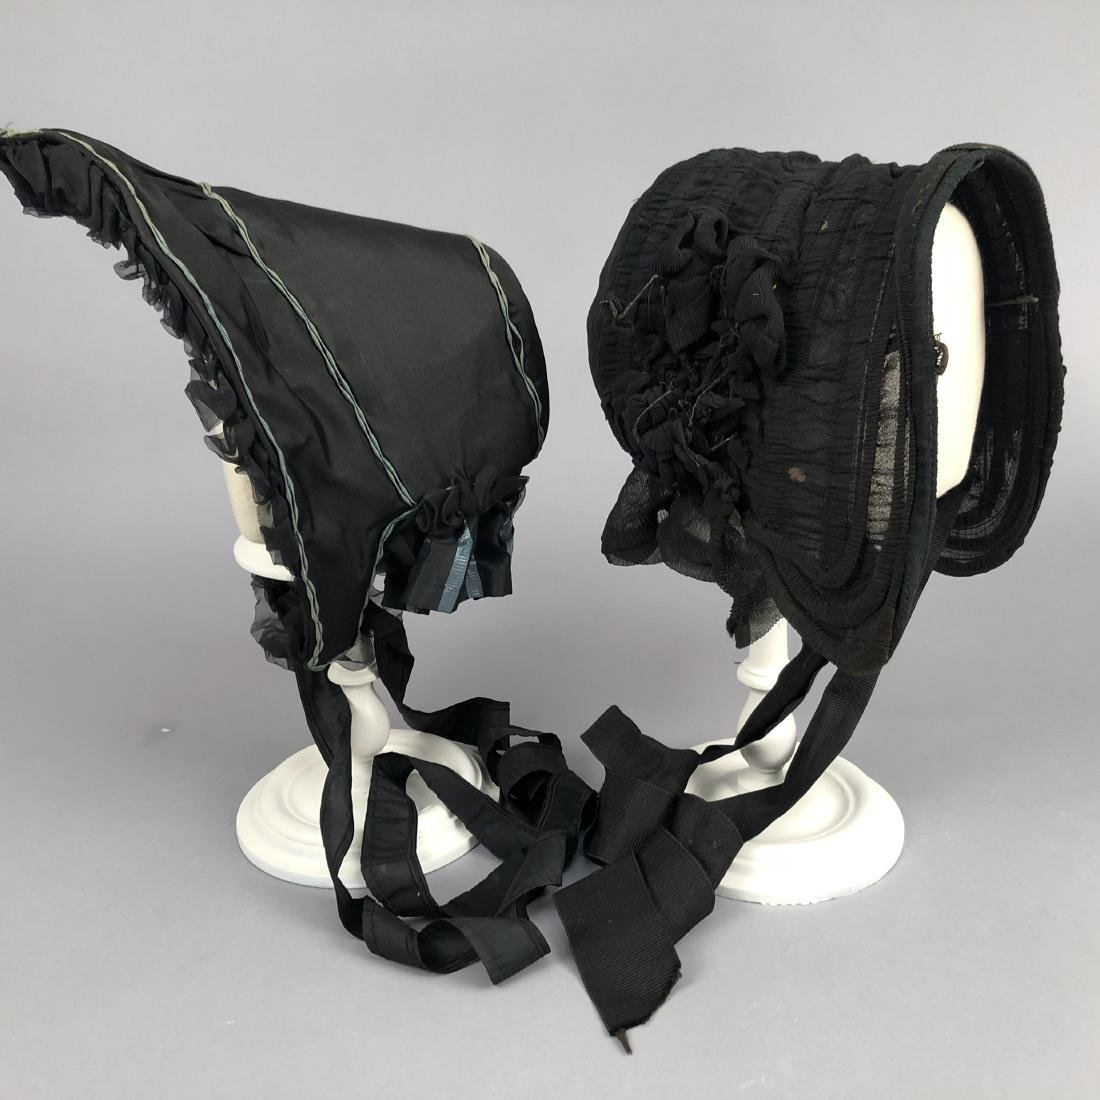 TWO BLACK MOURNING BONNETS, 1840s and c. 1860 - 2